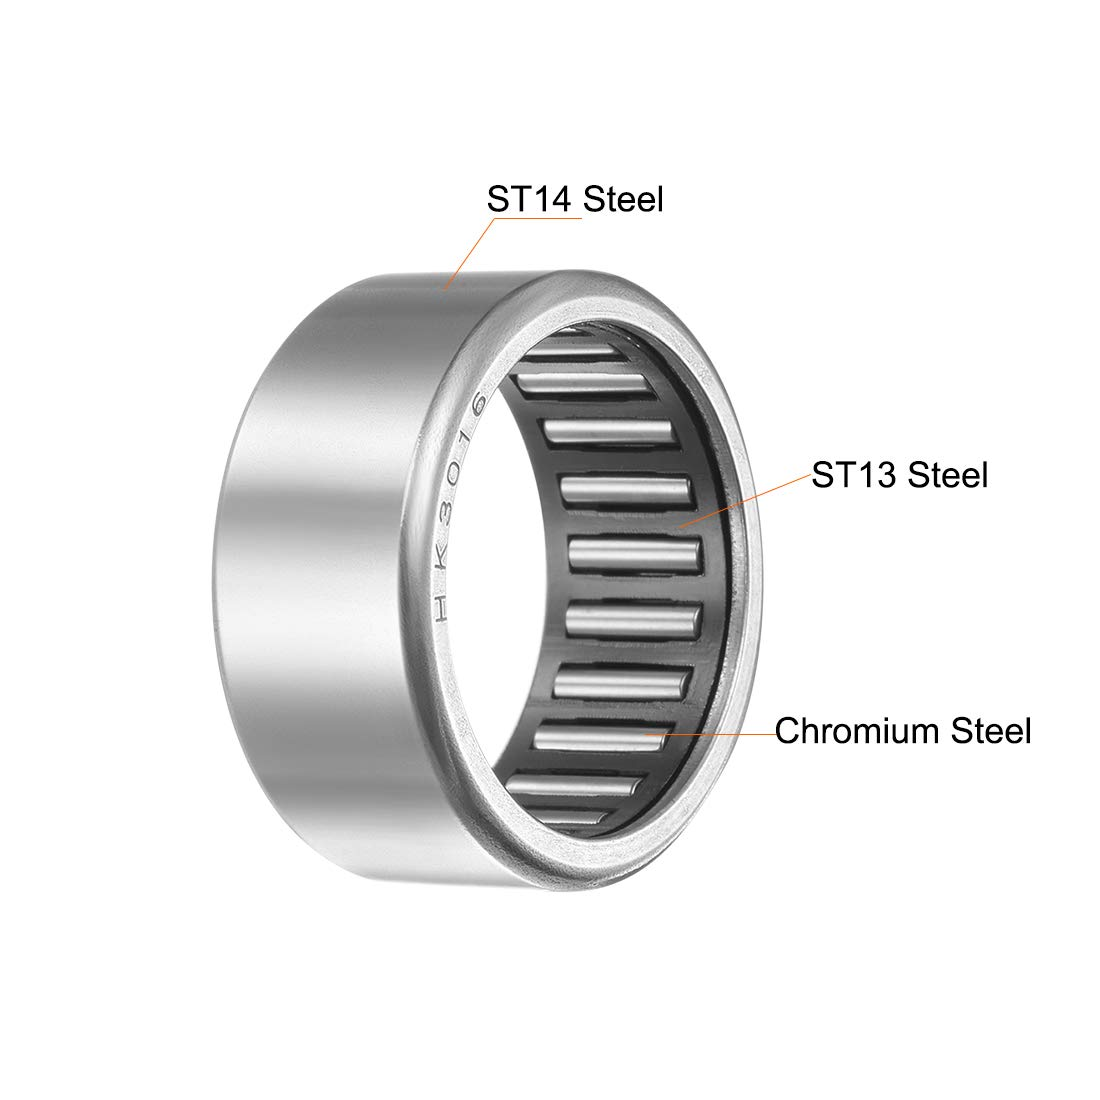 Open End 16mm Width 27000N Static Load 15200N Dynamic Load 8100rpm Limiting Speed 2pcs 37mm OD 30mm Bore uxcell HK3016 Drawn Cup Needle Roller Bearings